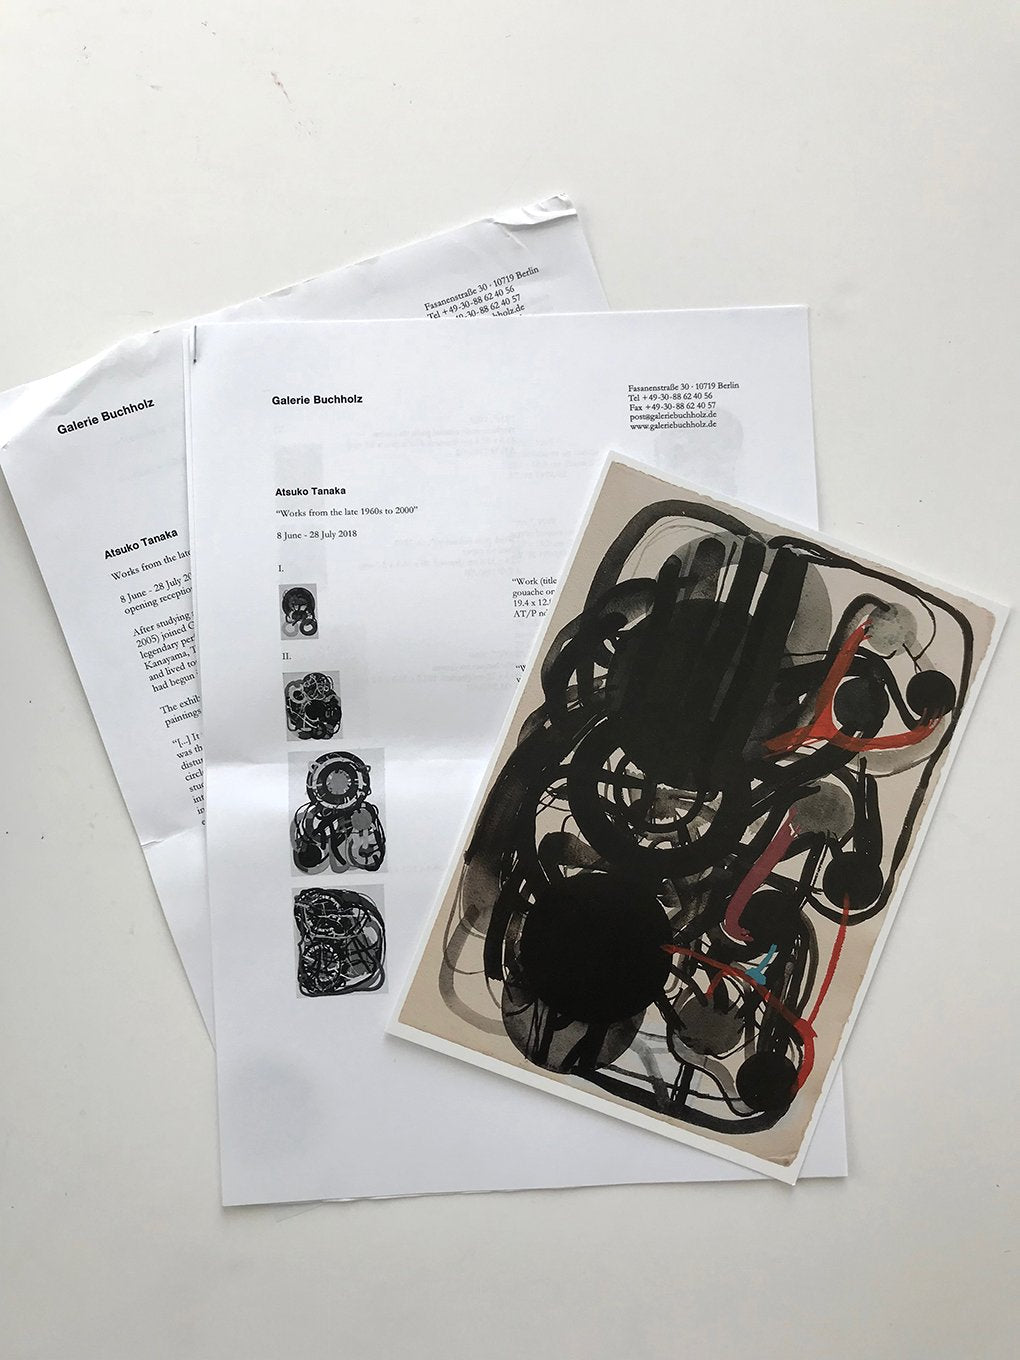 Atsuko Tanaka at Galeri Buchholtz, Berlin - Invitation card, press release and list of works from